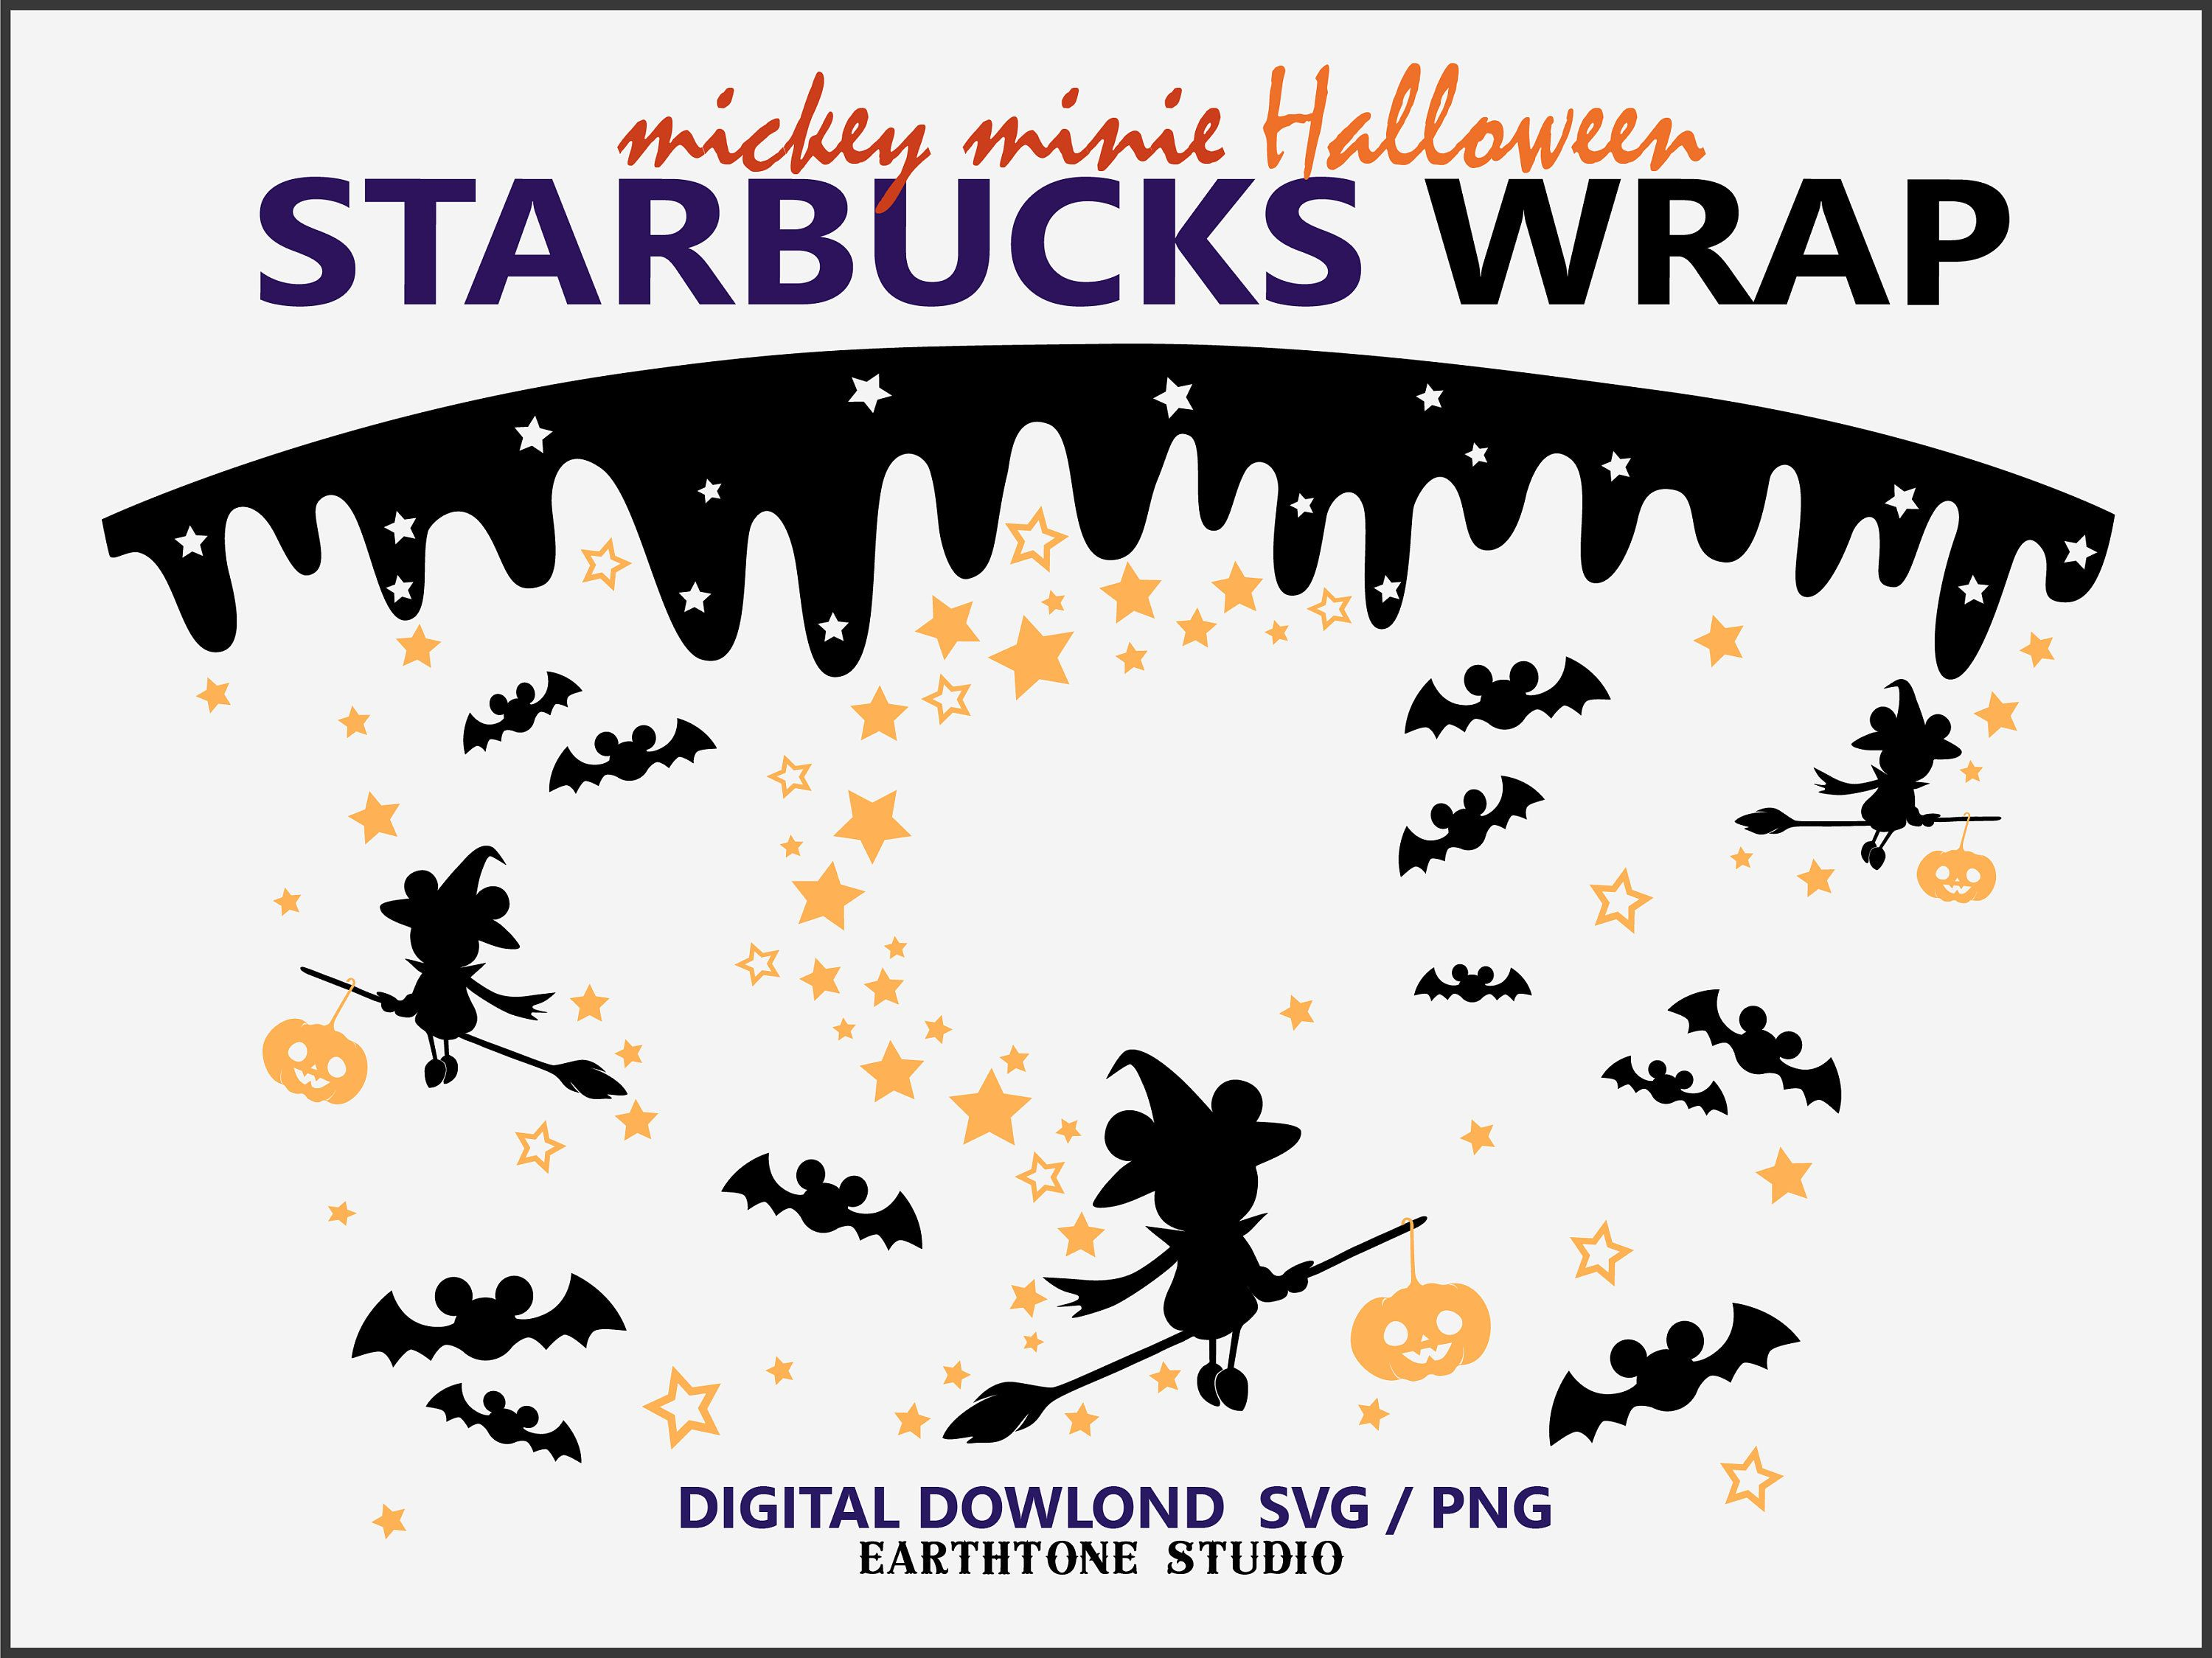 Starbucks is jumping on the wildly popular coloring book trend with its new holiday cups. Bat and Witch Halloween Full wrap for Starbucks cold cup 24 | Etsy in 2021 | Coffee themed cards ...